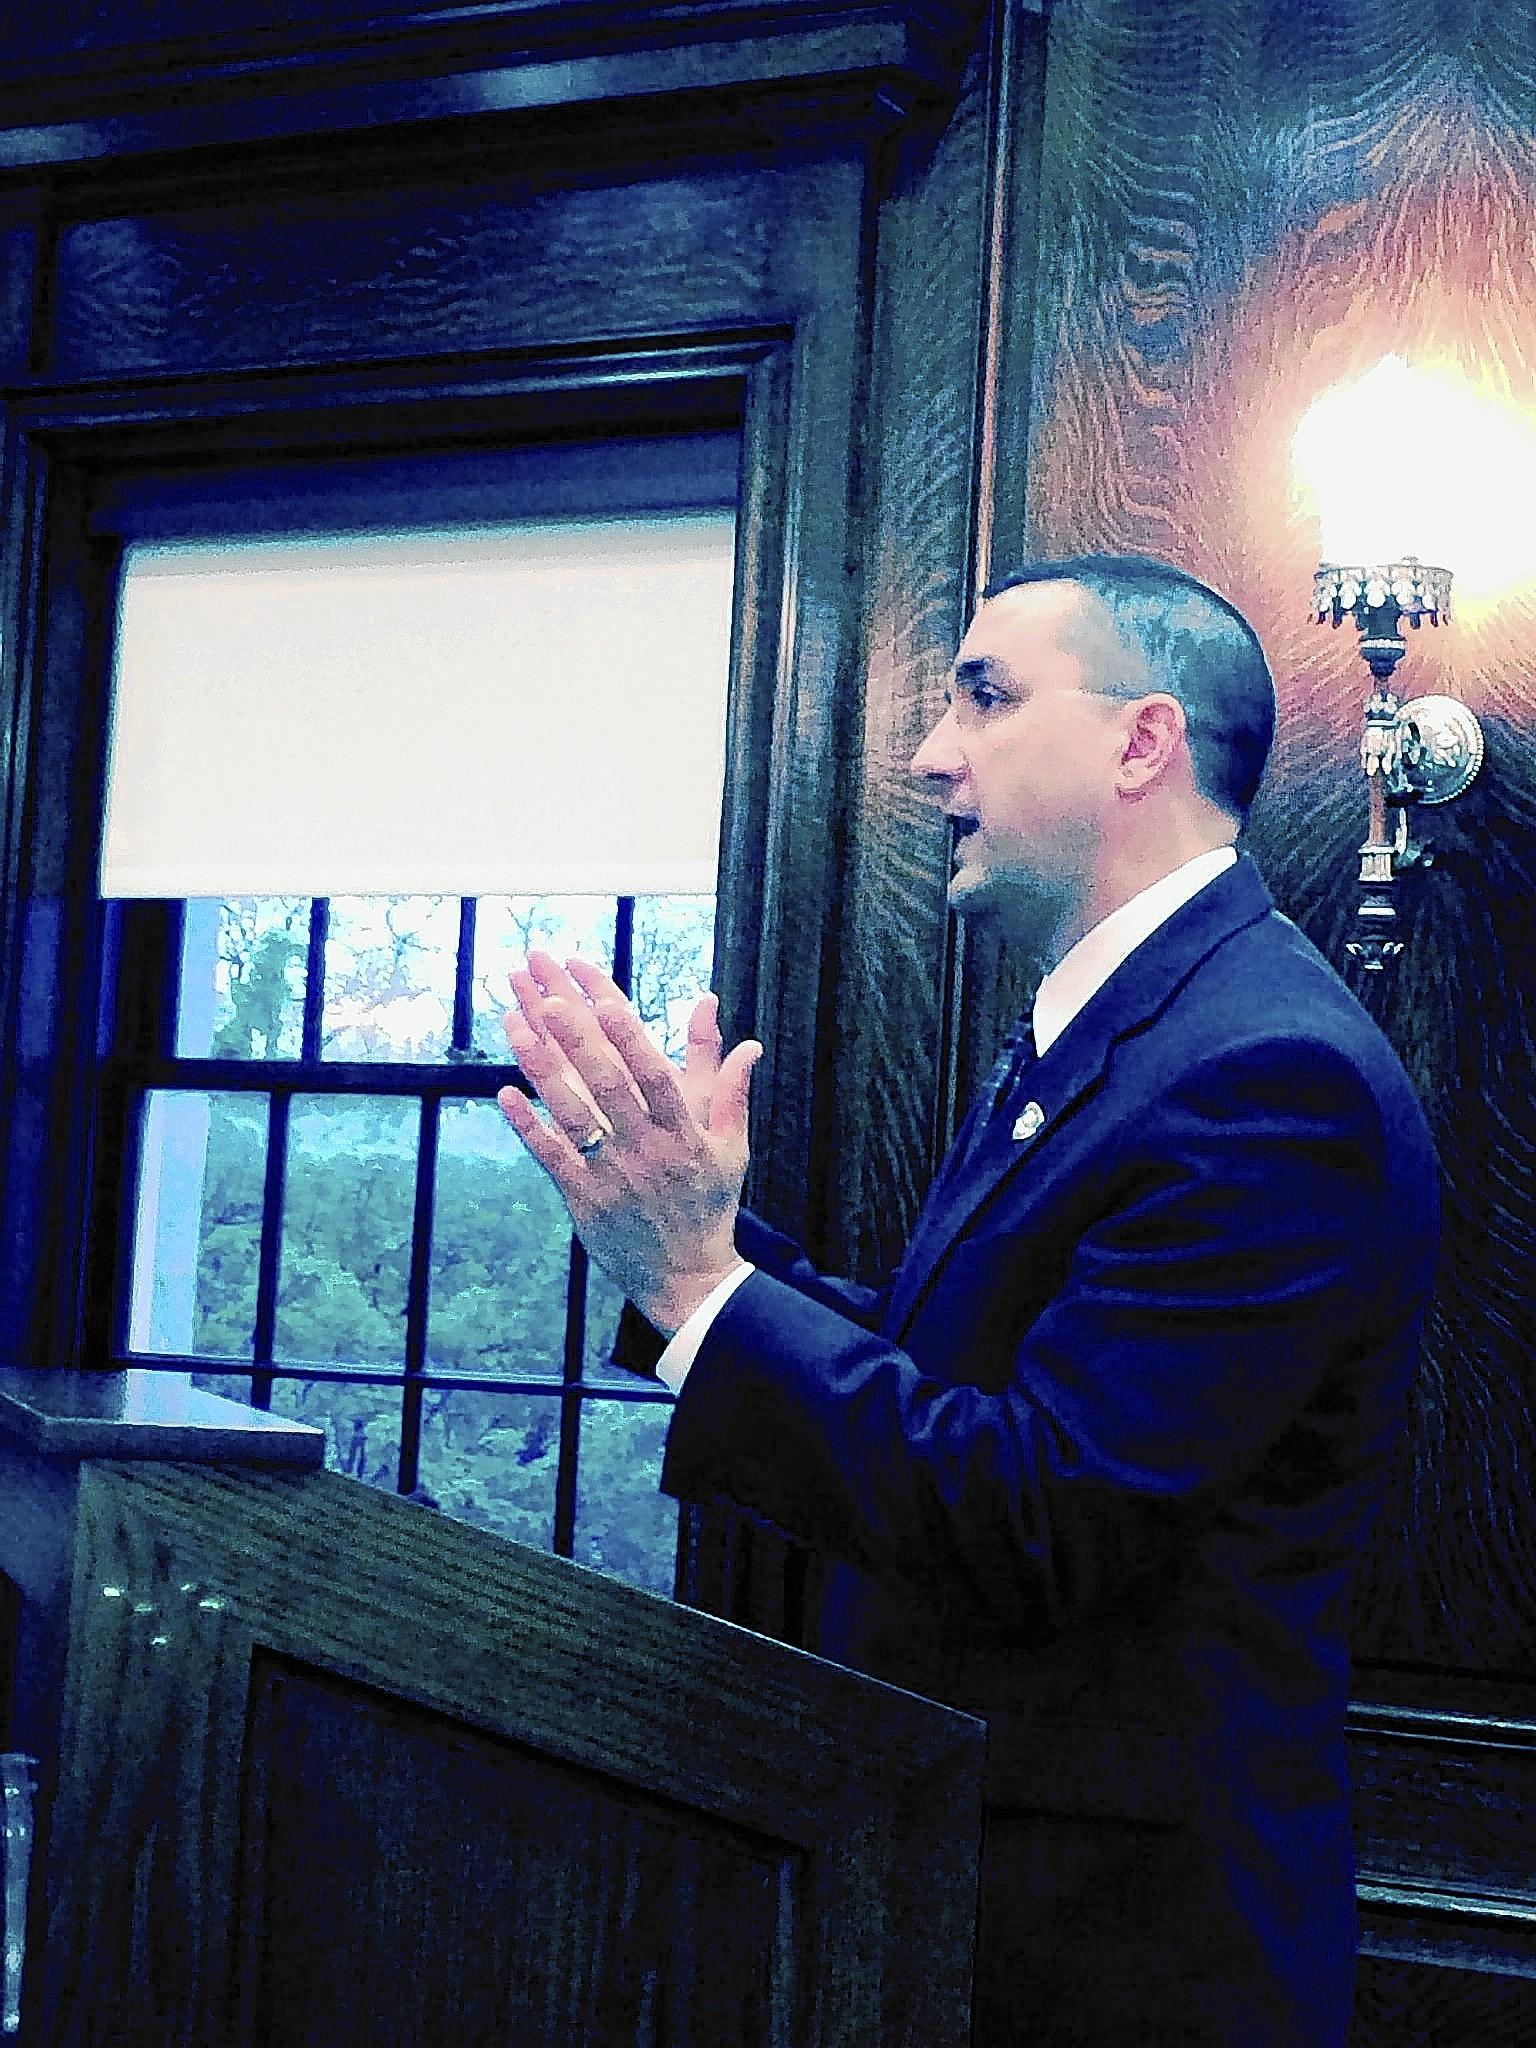 Winnetka Police Chief Patrick Kreis said the village's participation for the past 11 years in a state mutual aid organization, ILEAS, has proved beneficial during emergencies. The village council recently approved an updated agreement with ILEAS.